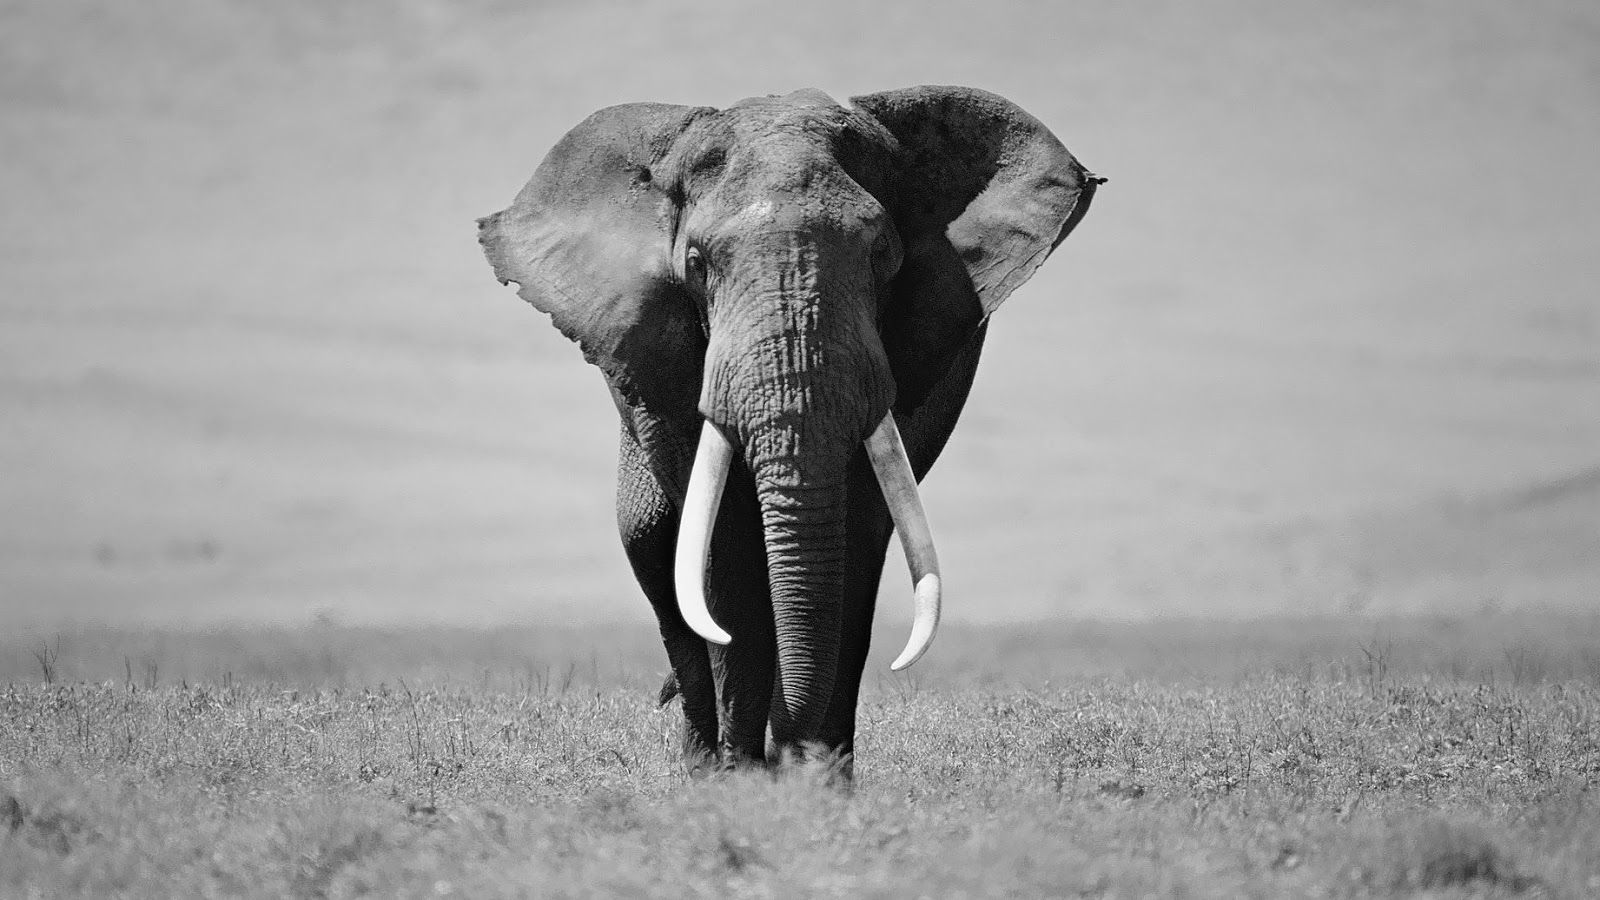 Black and white animal photo black and white elephant wallpaper hd animal background photo